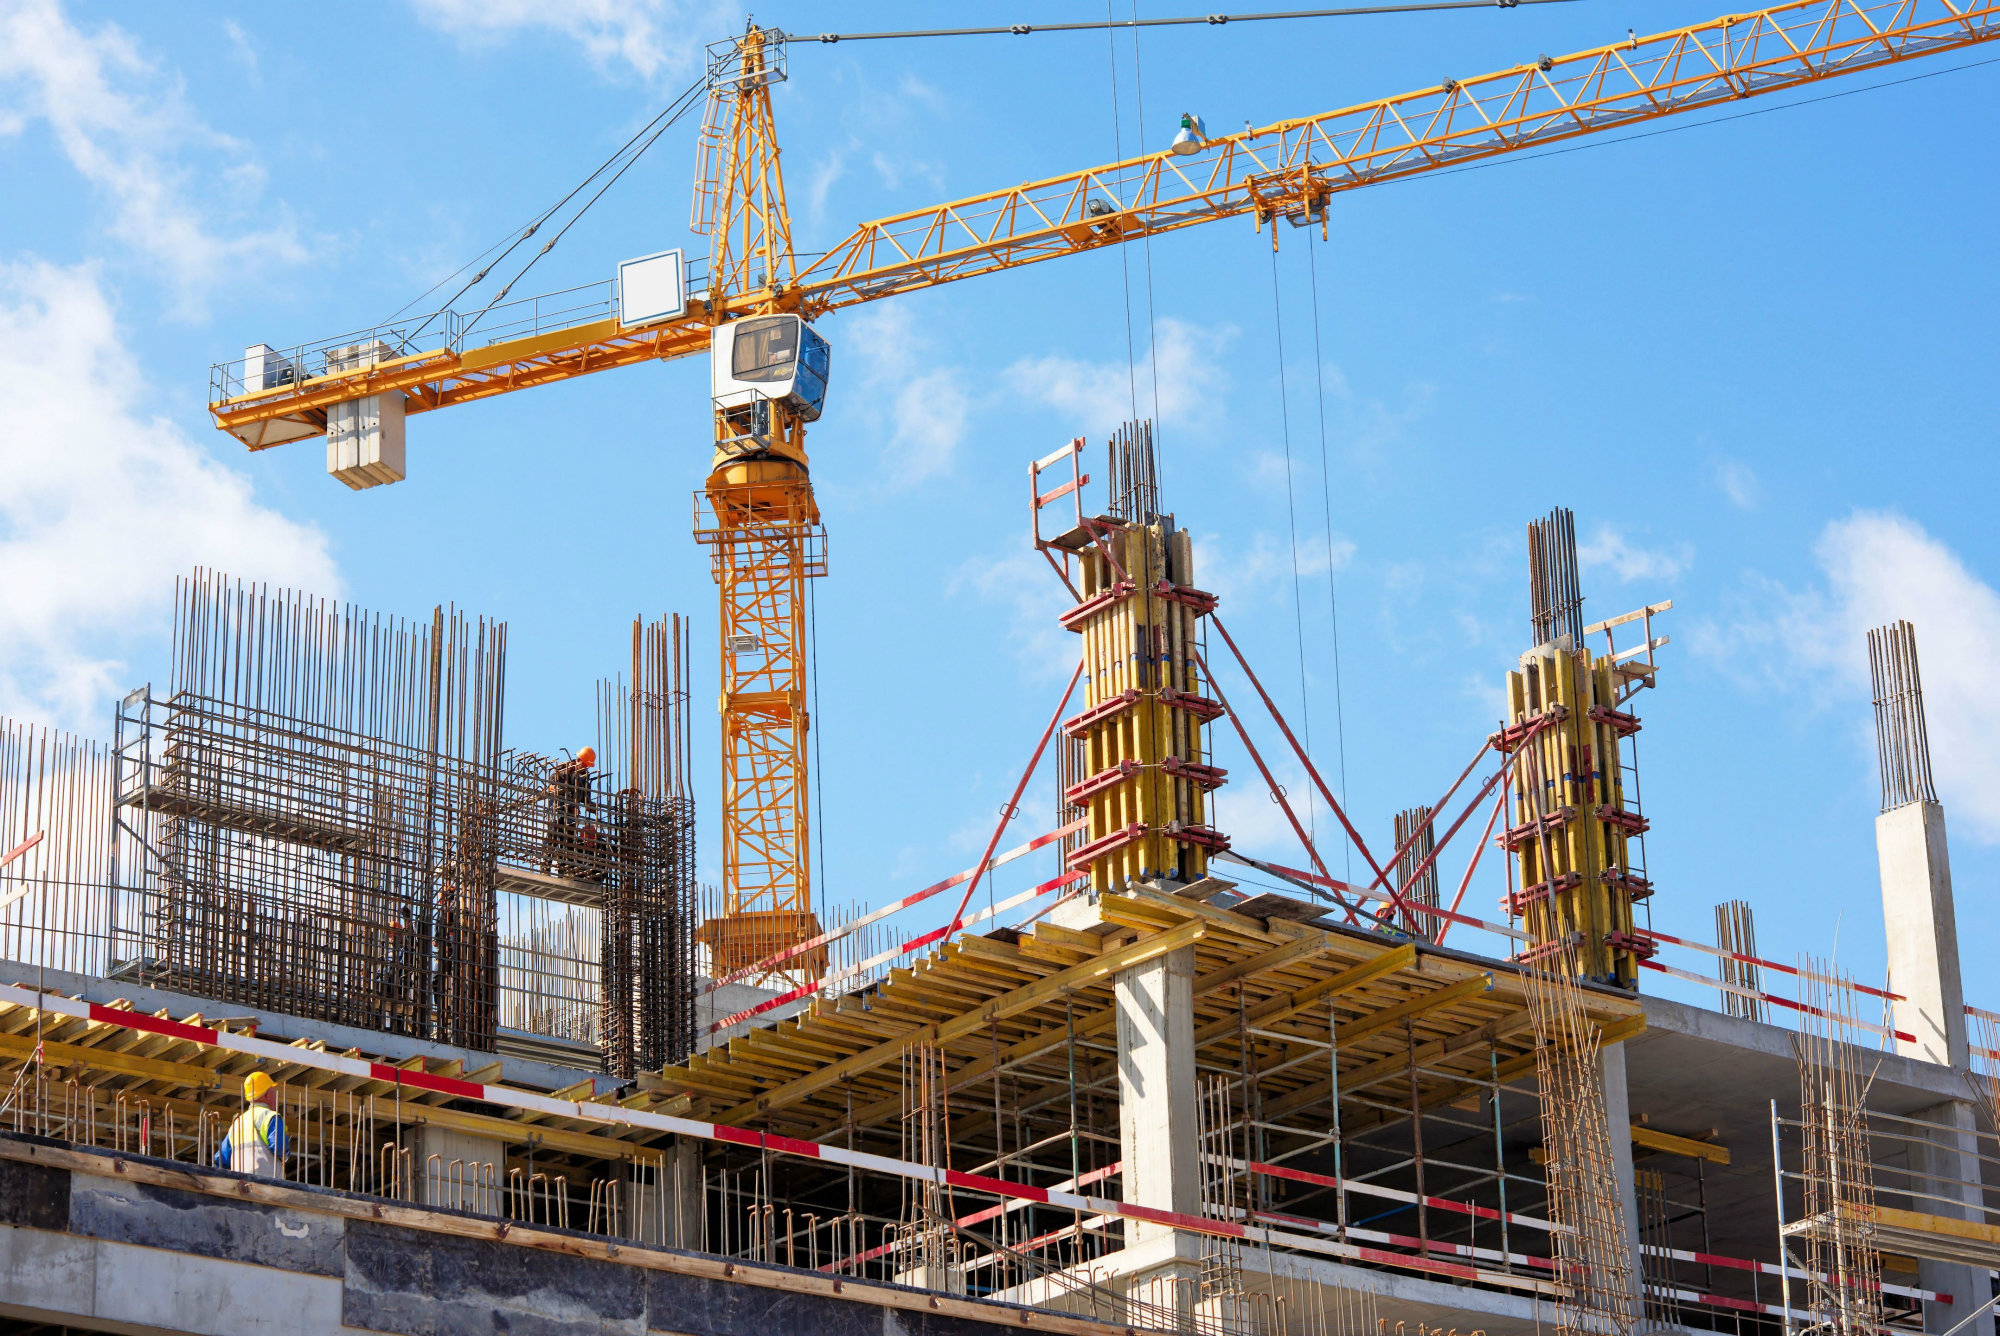 construction Job rankings for this year's best occupations, based on their hiring prospects, unemployment rates, average salaries, and job satisfaction includes rankings for the best jobs in business, construction, health care, and technology.